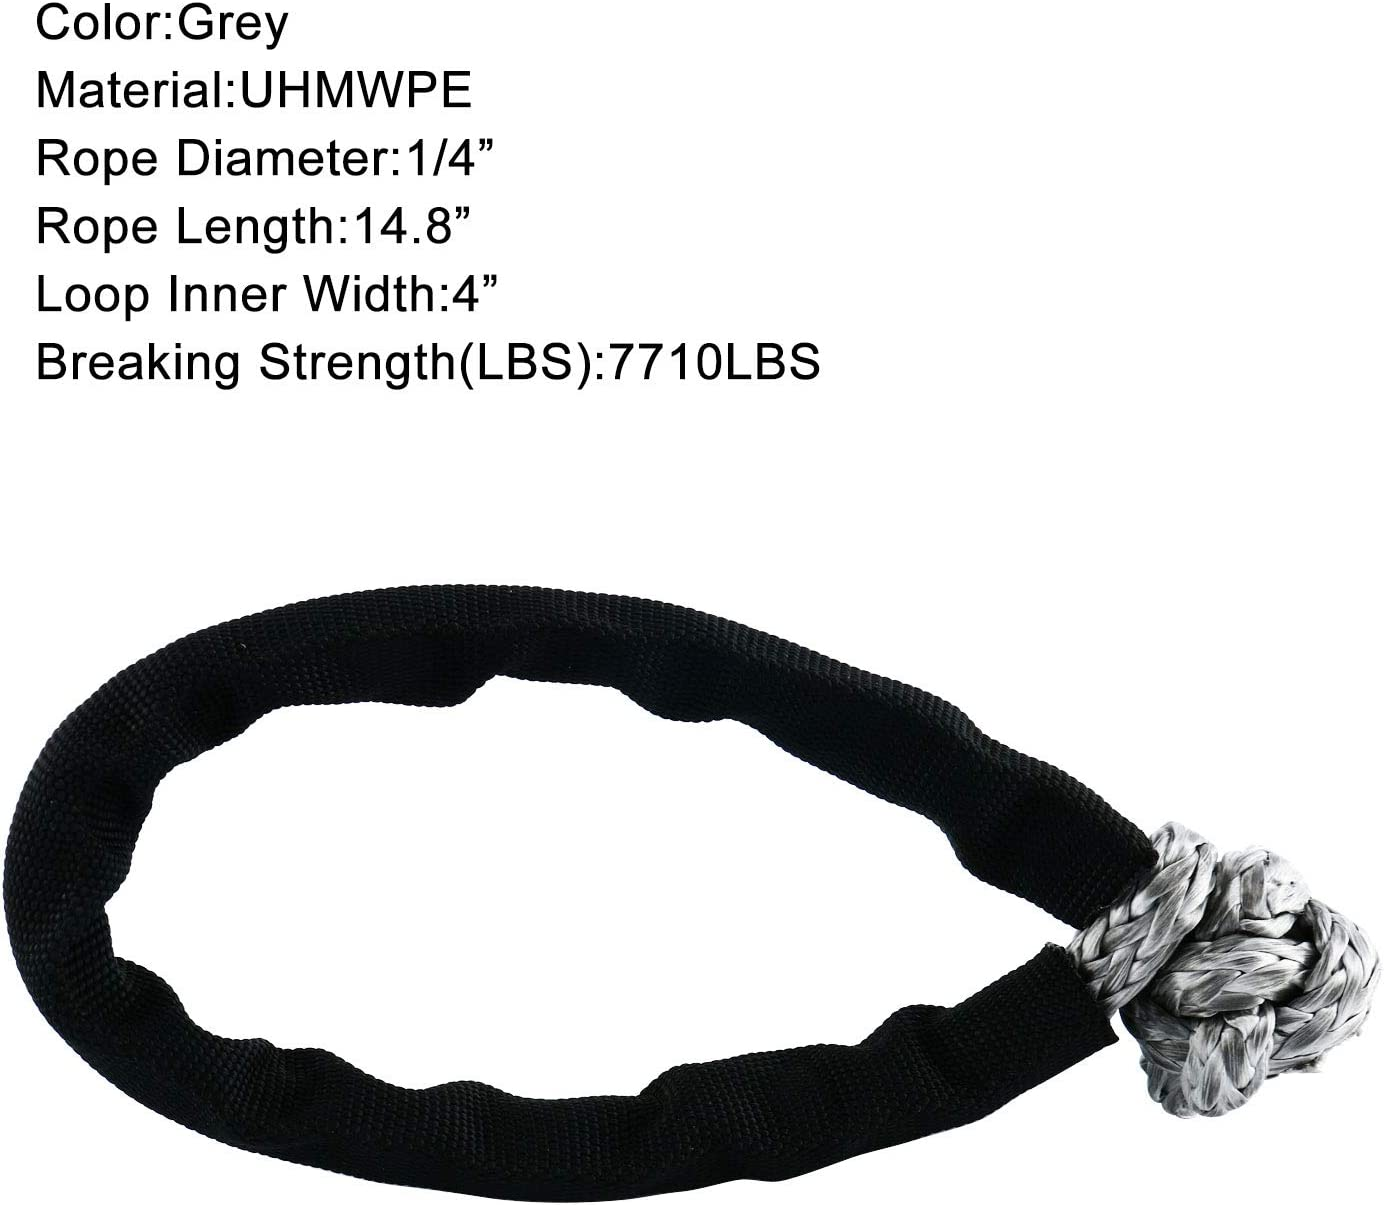 with Black Sleeve for 4 Off-Road ATV UTV Jeep Winch Ropes 1//2 x 23.4 DasMarine Soft UHMWPE Shackle 1//2 x 23.4 30860LBS Breaking Strength